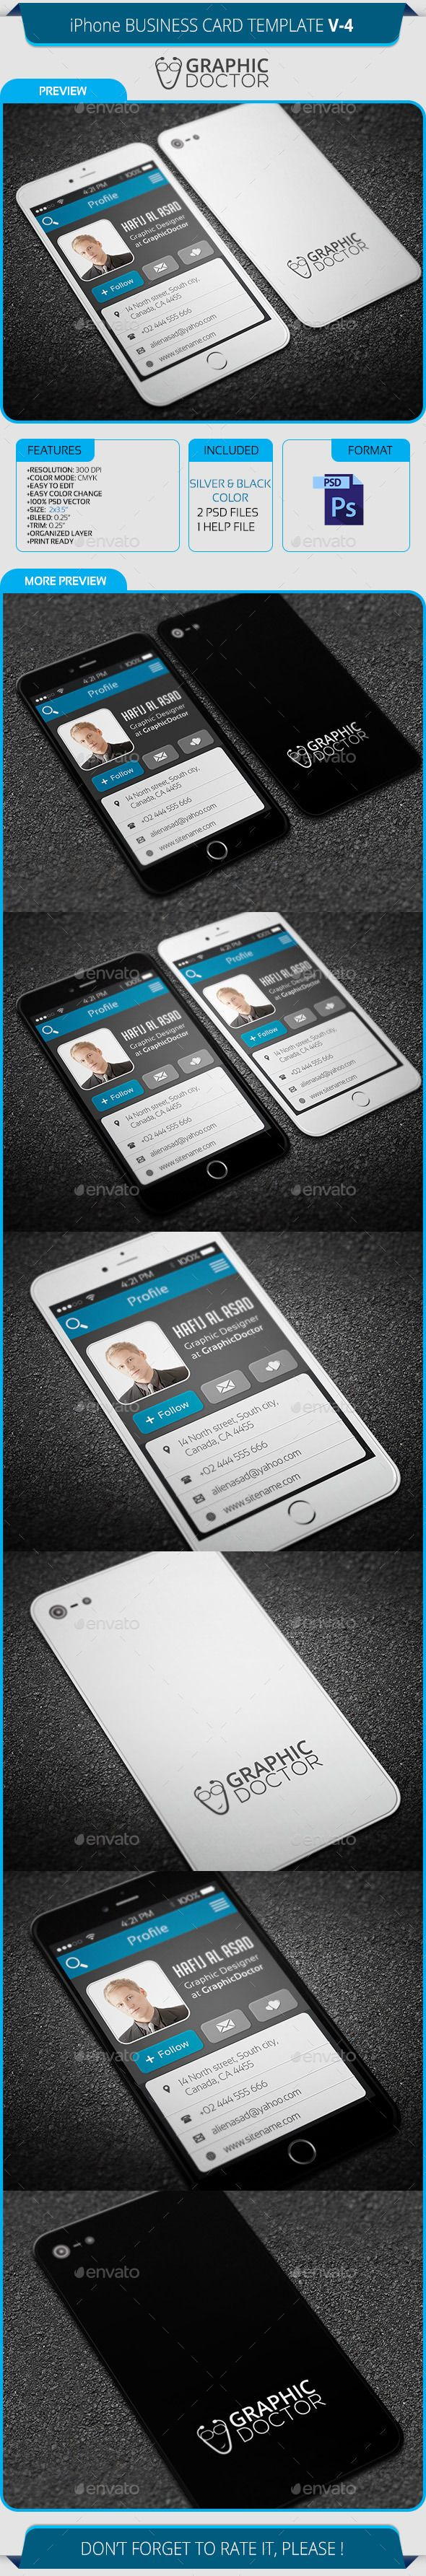 iphone business card template psd